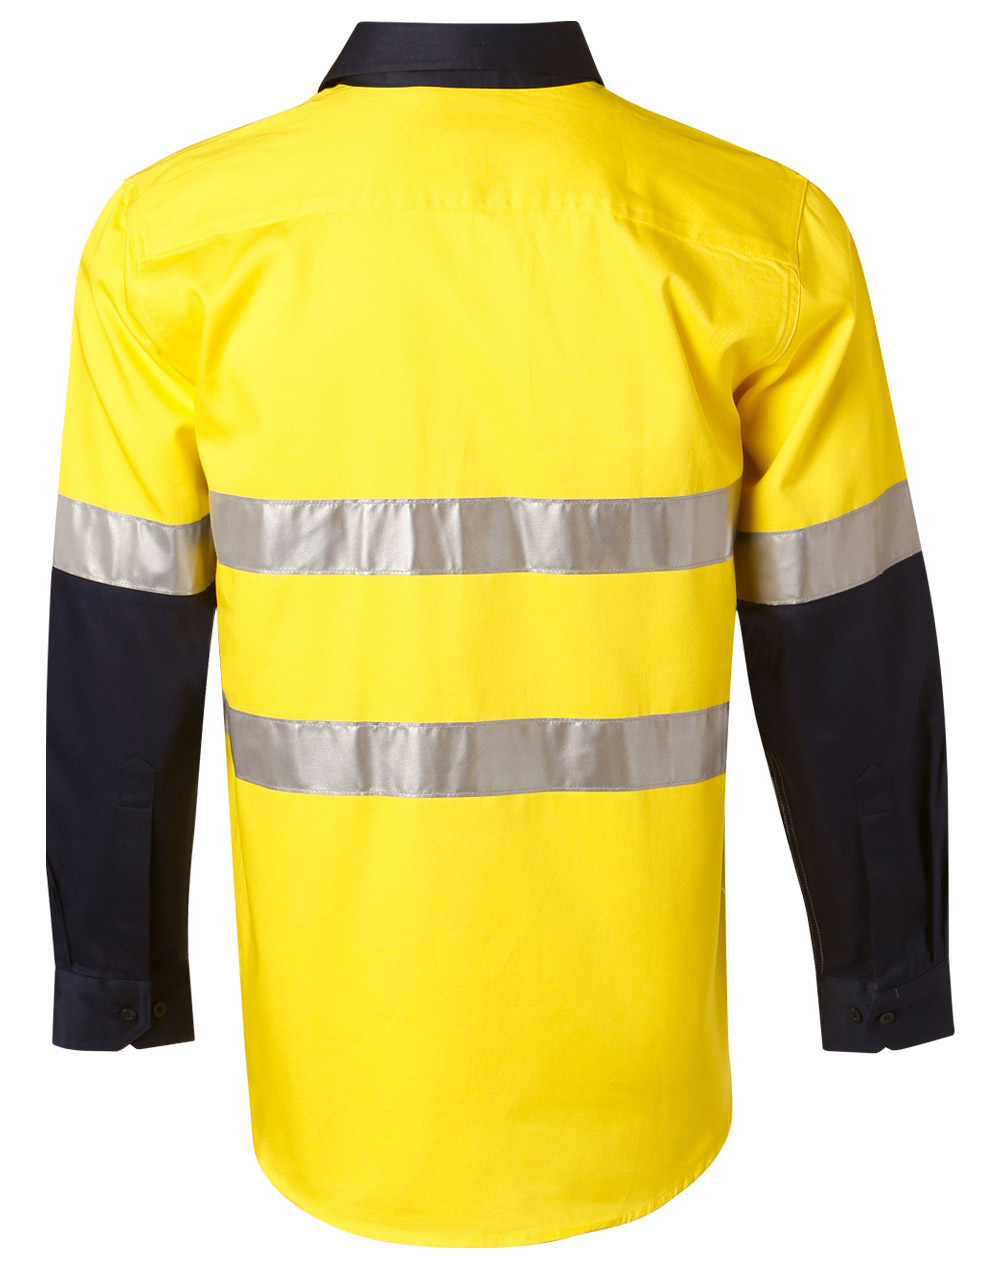 https://s3-ap-southeast-1.amazonaws.com/ws-imgs/WORKWEAR/SW68_Yellow.Navy_Back.jpg